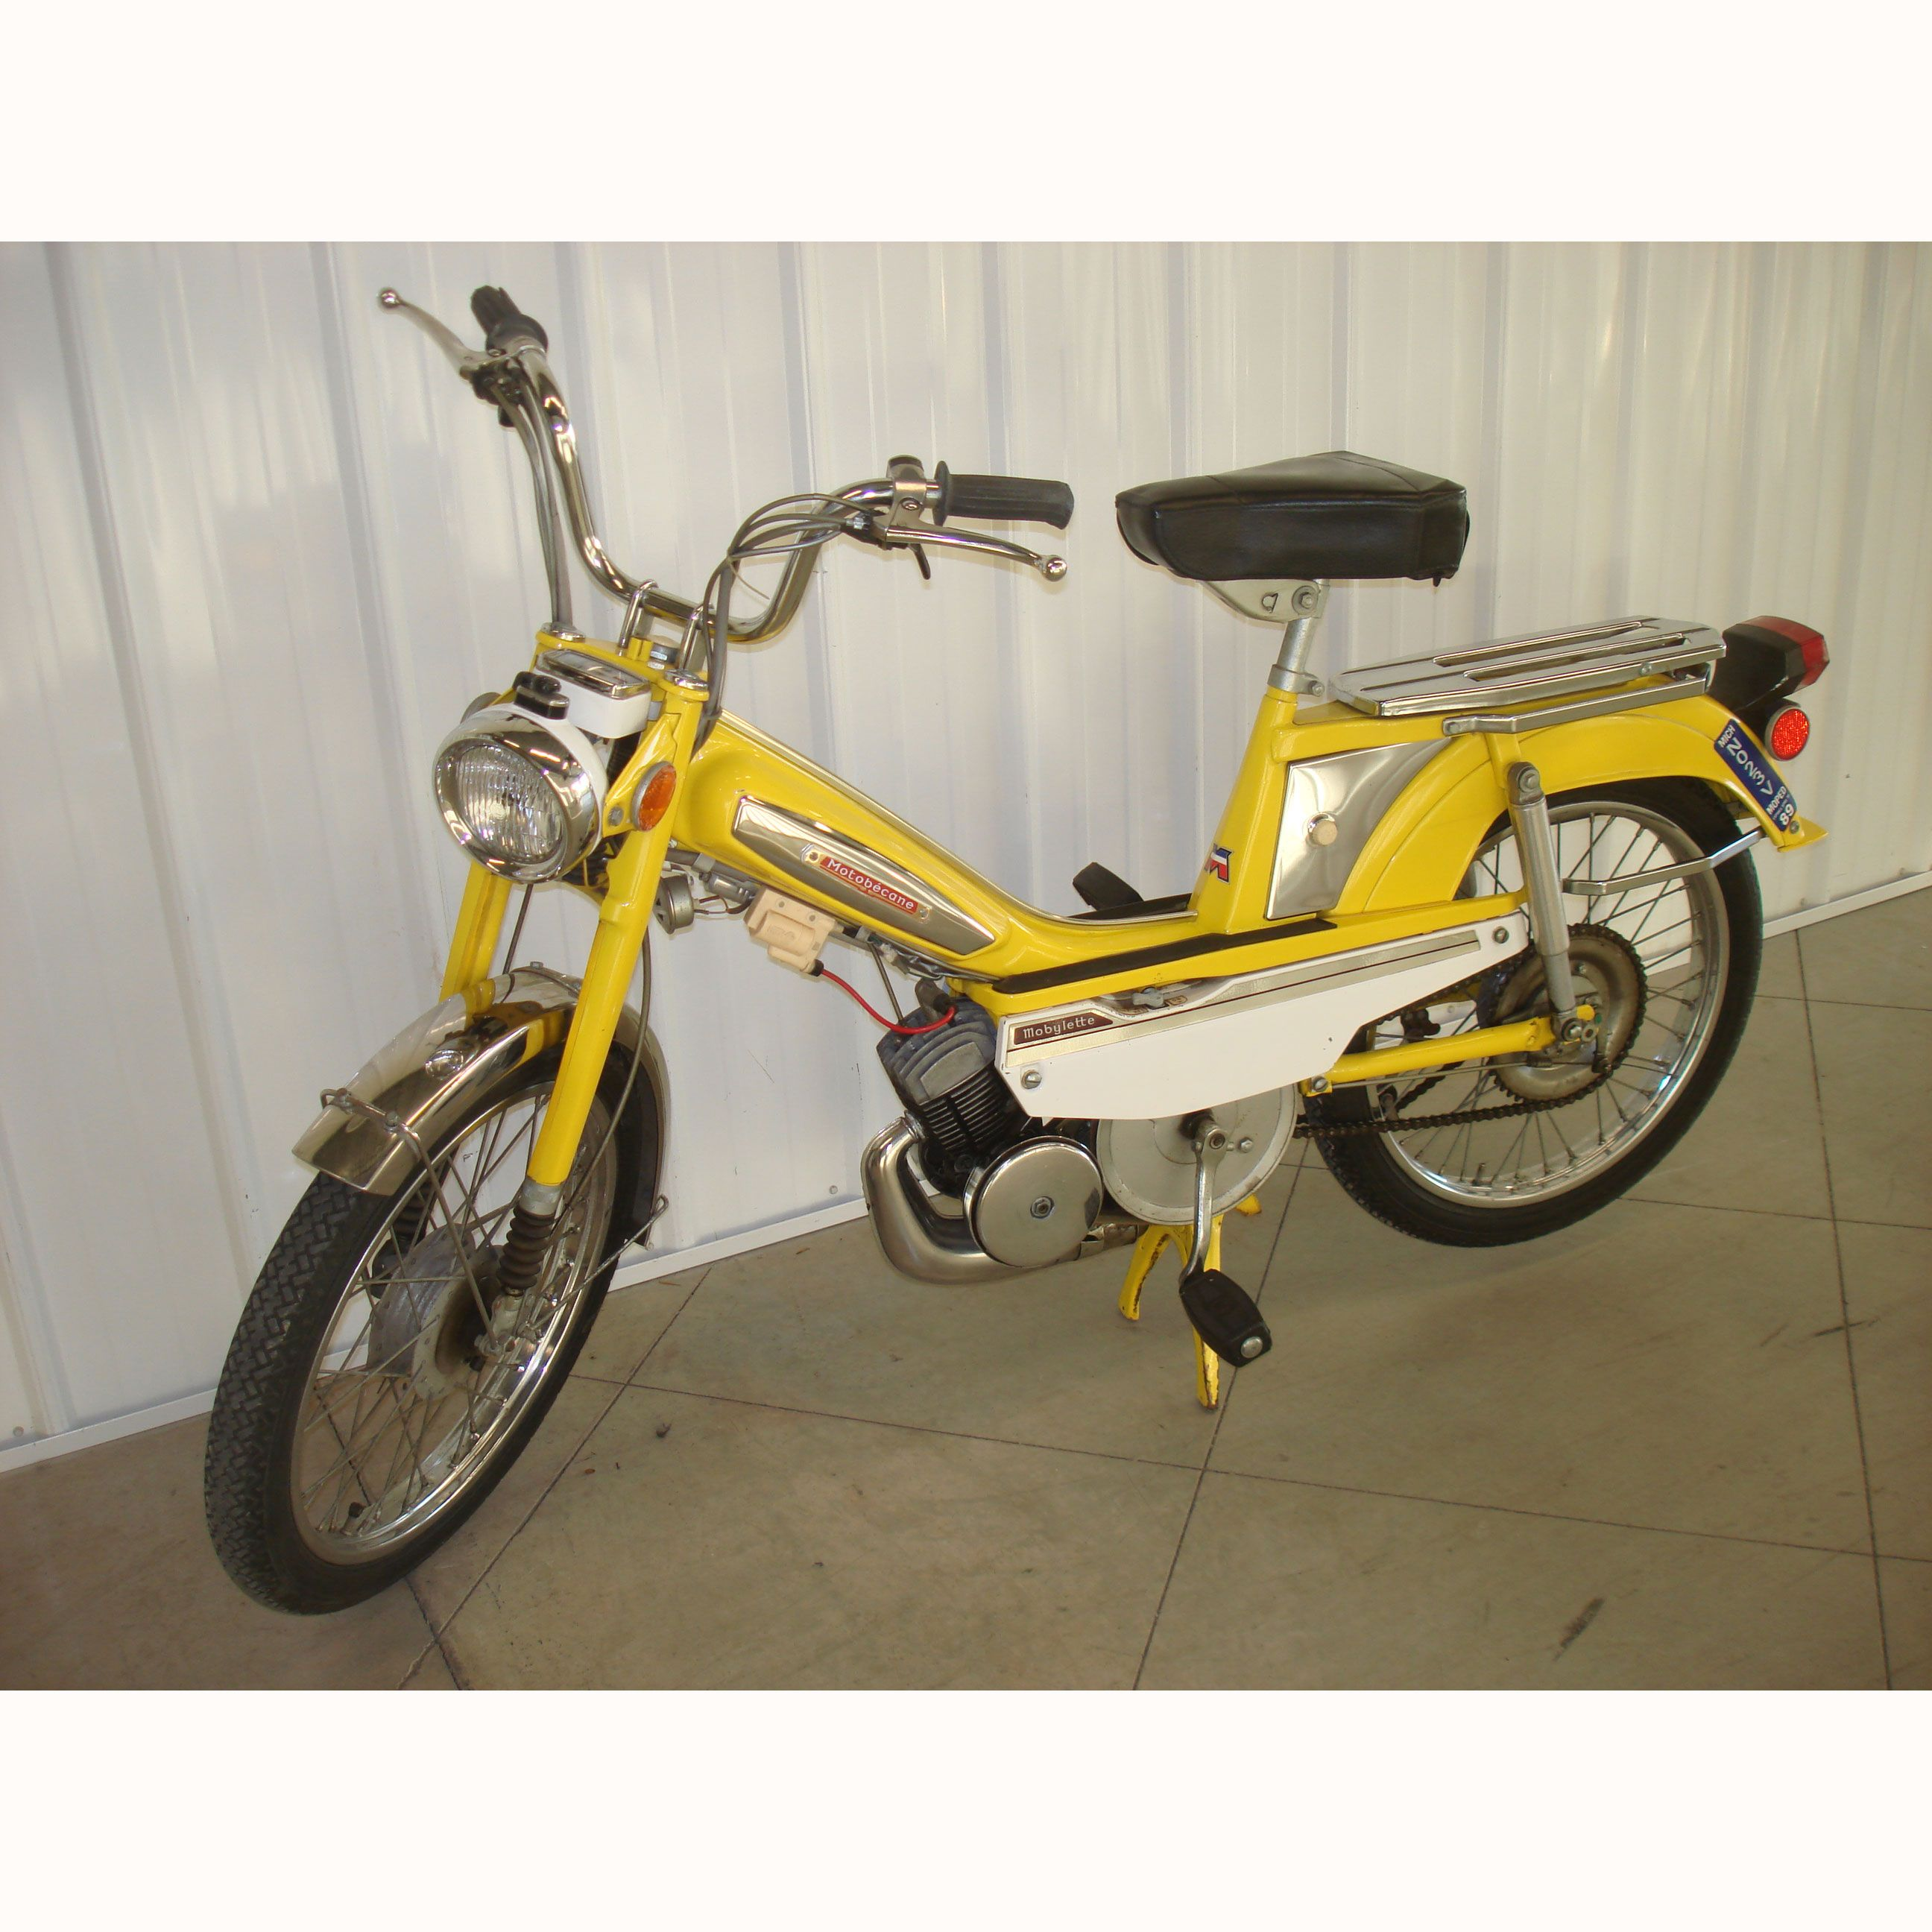 vintage 1976 motobecane 50cc mobylette moped cars pinterest mopeds moped scooter and scooters. Black Bedroom Furniture Sets. Home Design Ideas